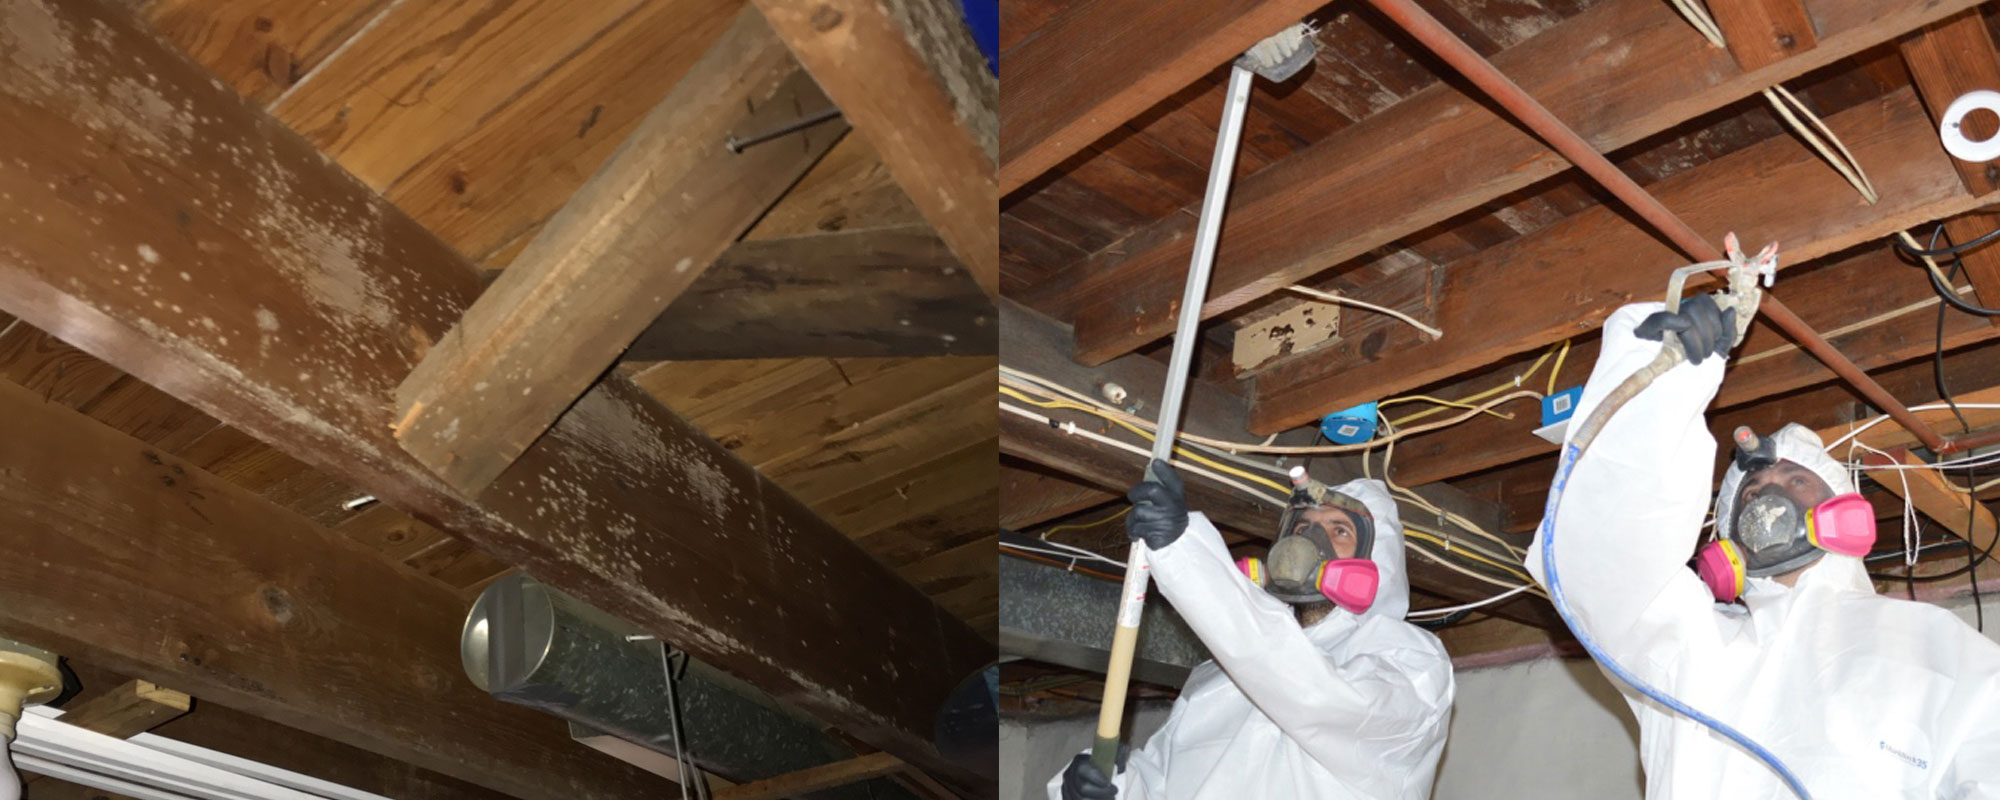 Basement-Mold-Remediation-eastern-pa